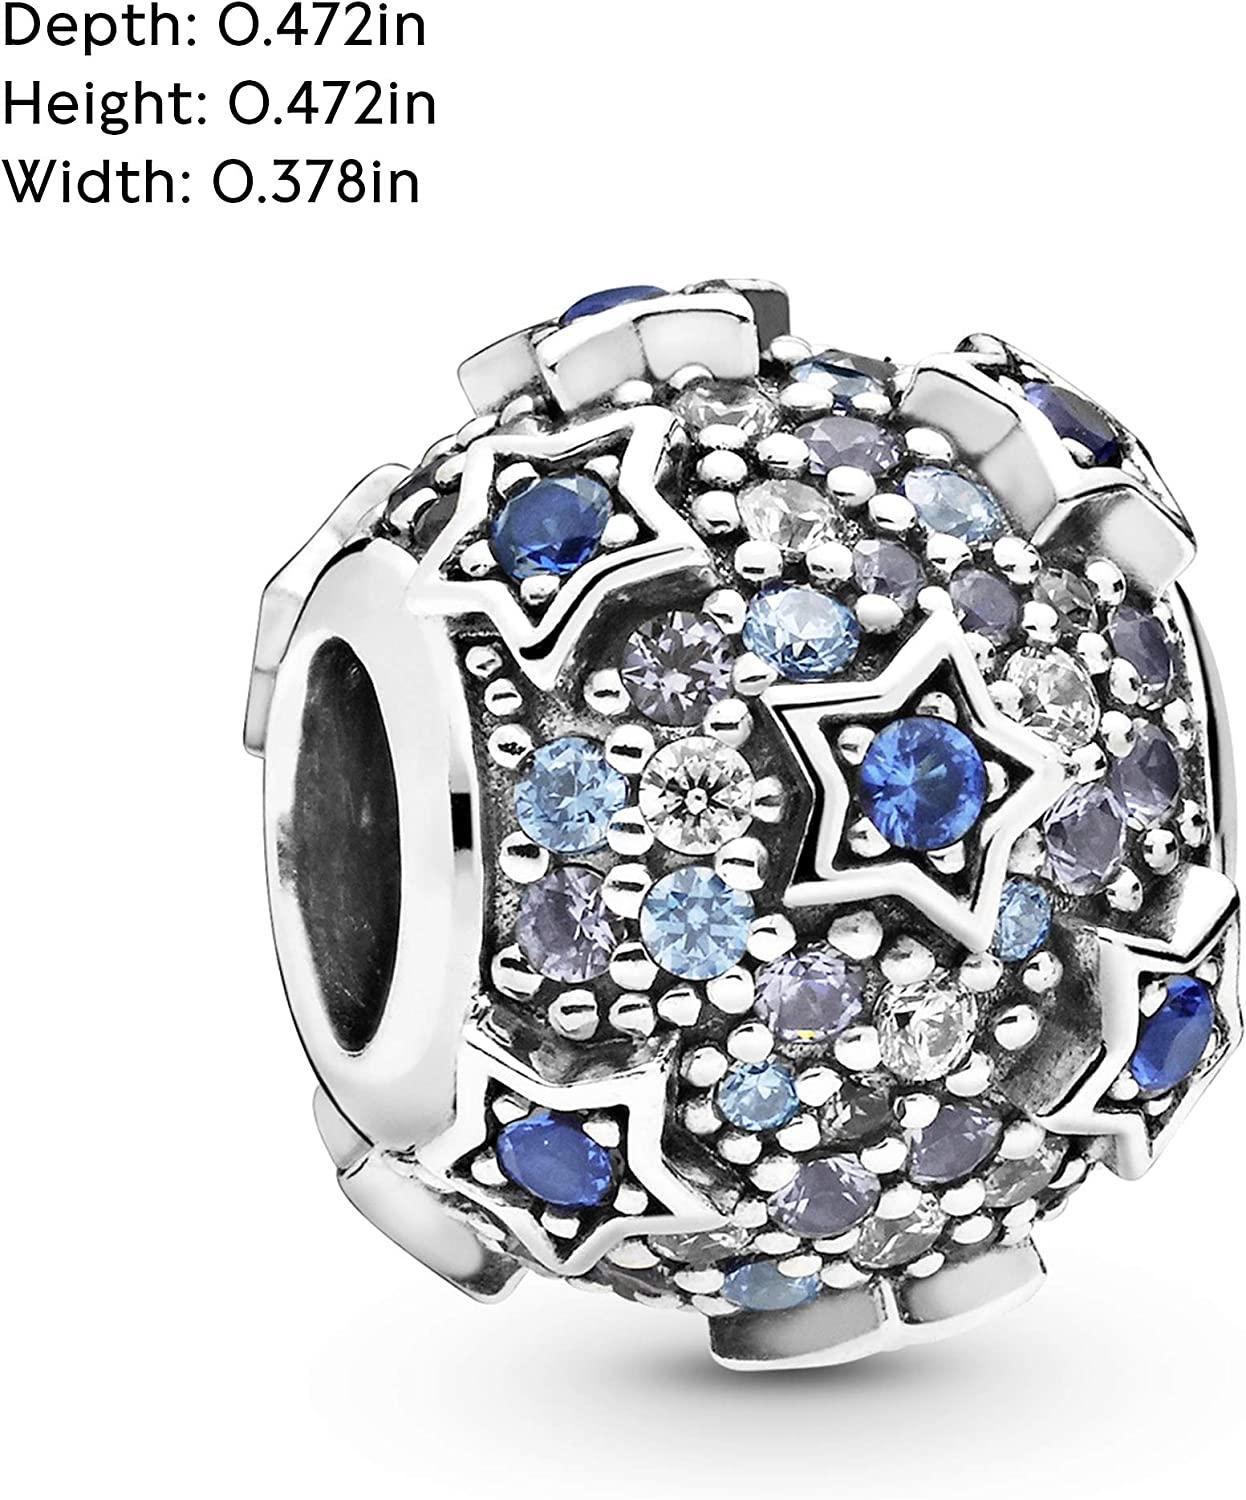 CZ Star Charms Micro Pave Charms Star Pendant 8x10mm 24k Shiny Gold Star Charms ZRCN467 Micro Pave Star Cubic Zirconia Charms FLT